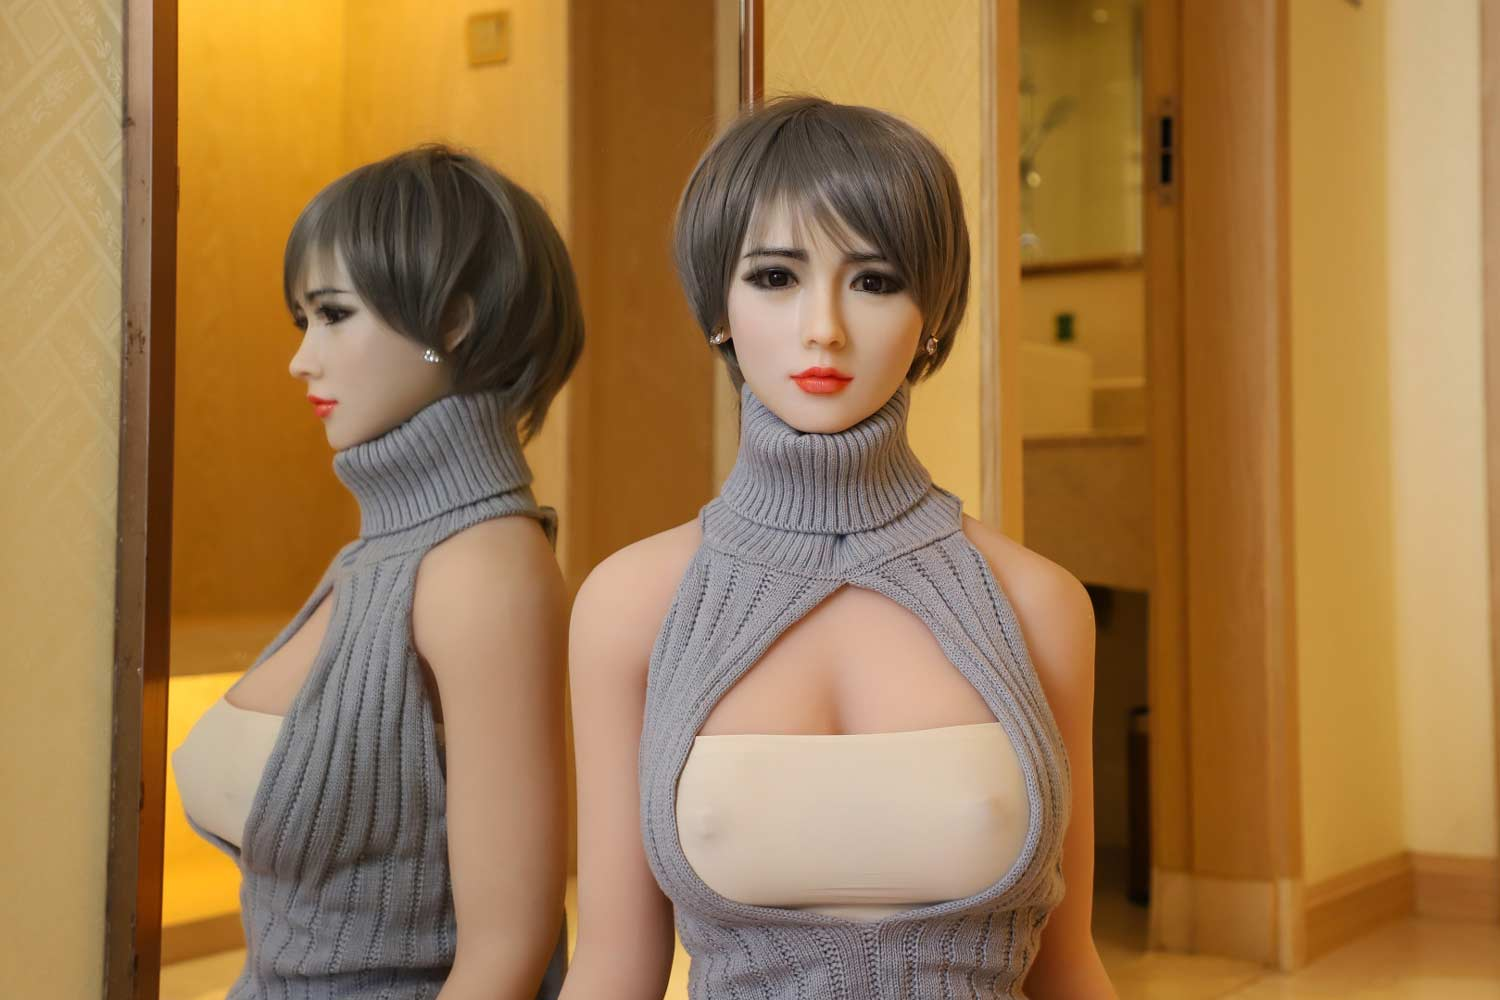 Silicone sex doll in gray sweater